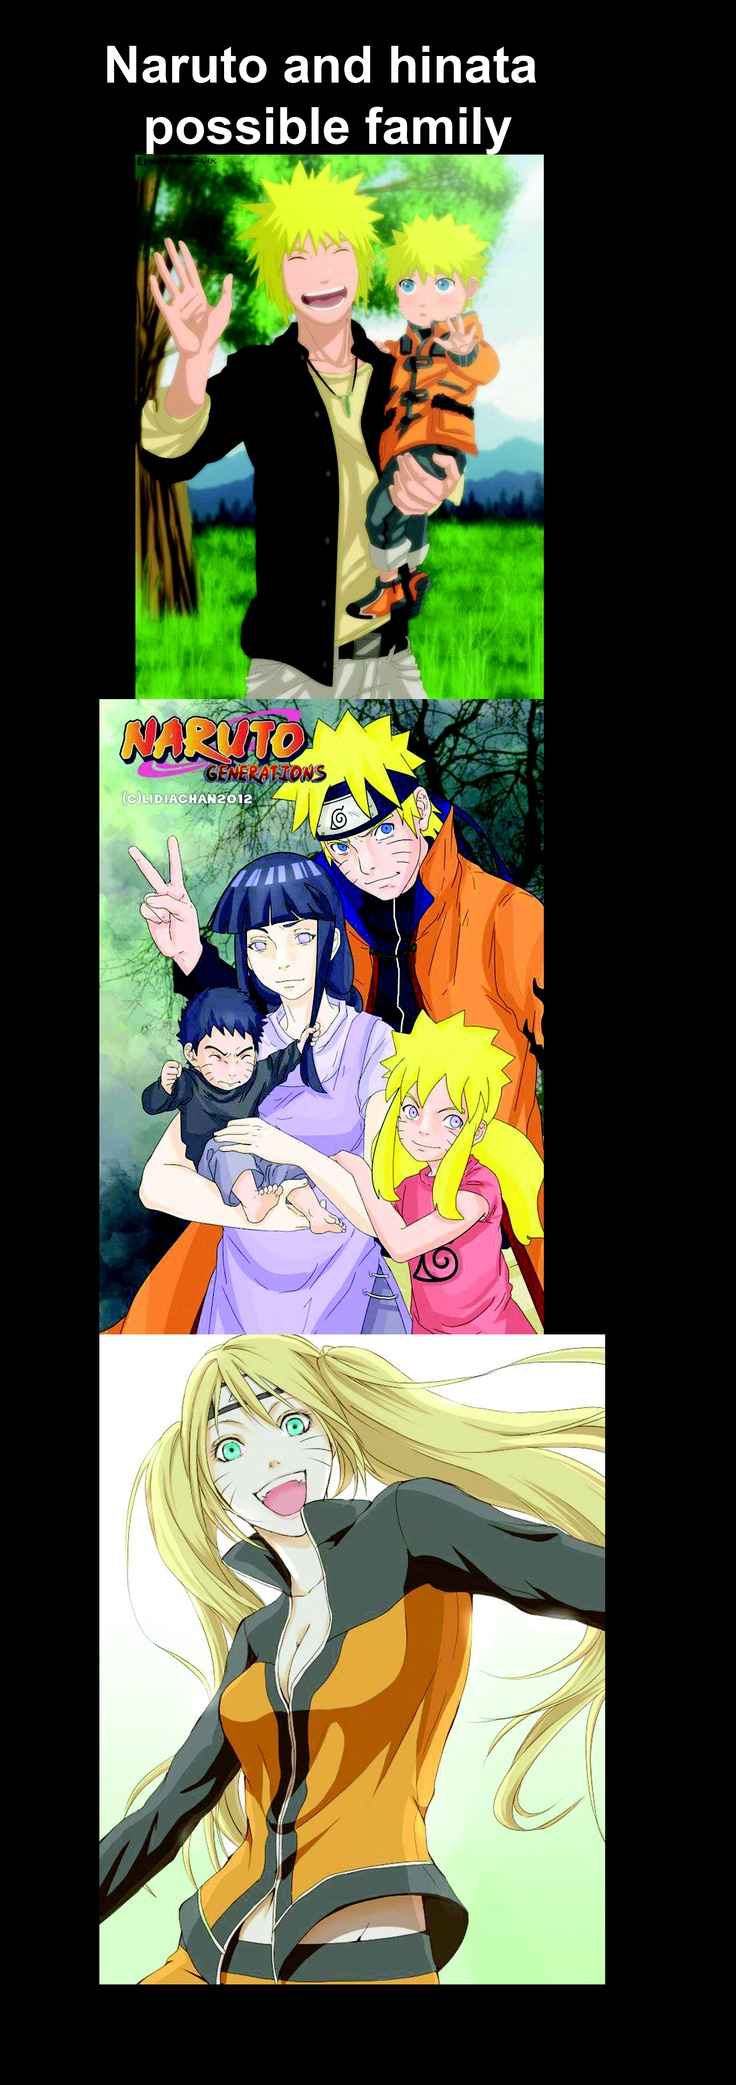 #naruto and #hinata possible family what do you fans think about it out there. We are going to be talking about this on our #anime radio show http://acfradio.com